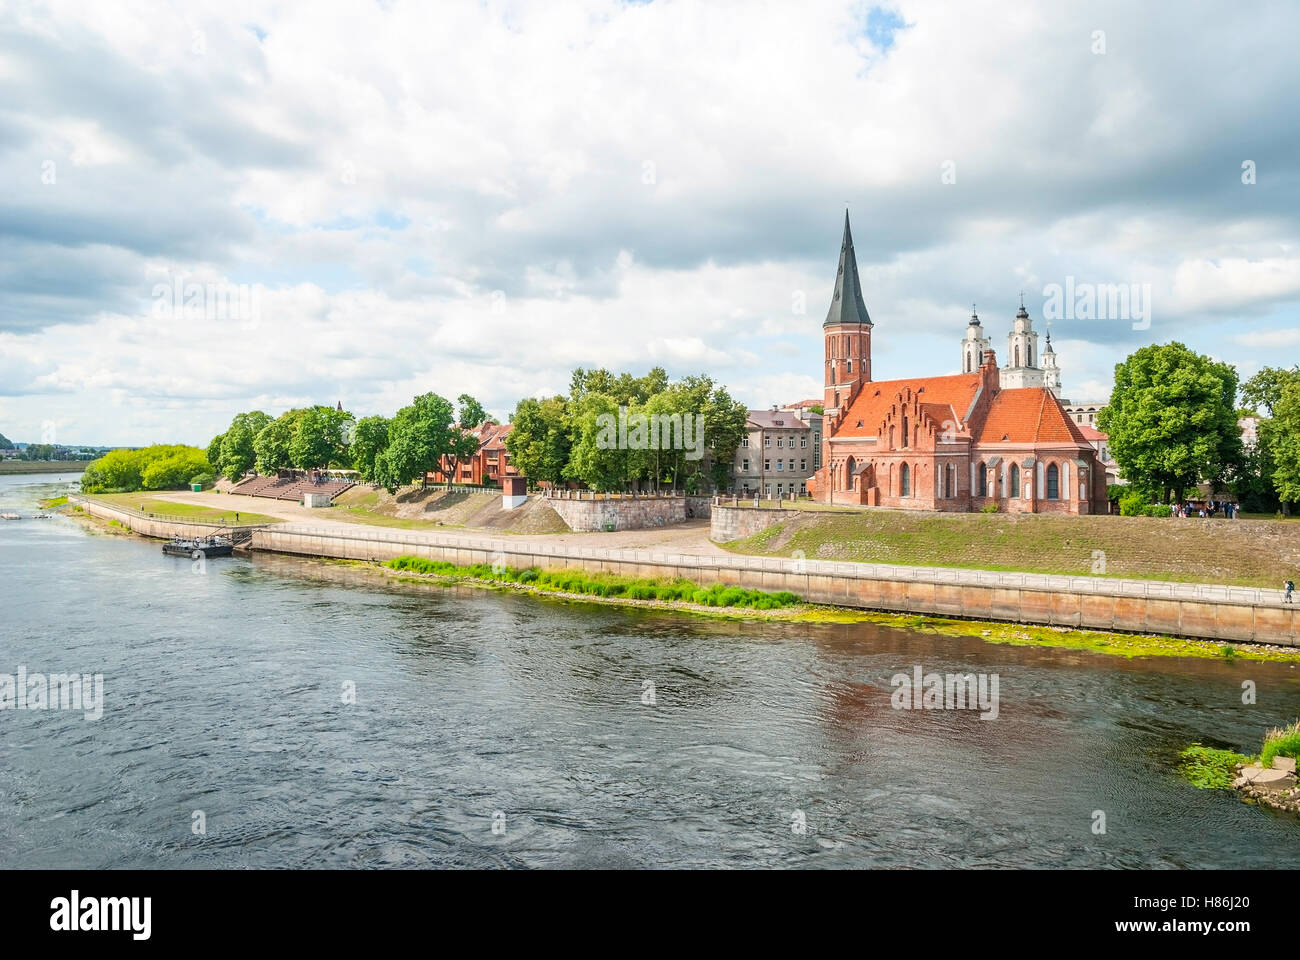 Old church in Kaunas by the Nemunas river, Lithuania - Stock Image